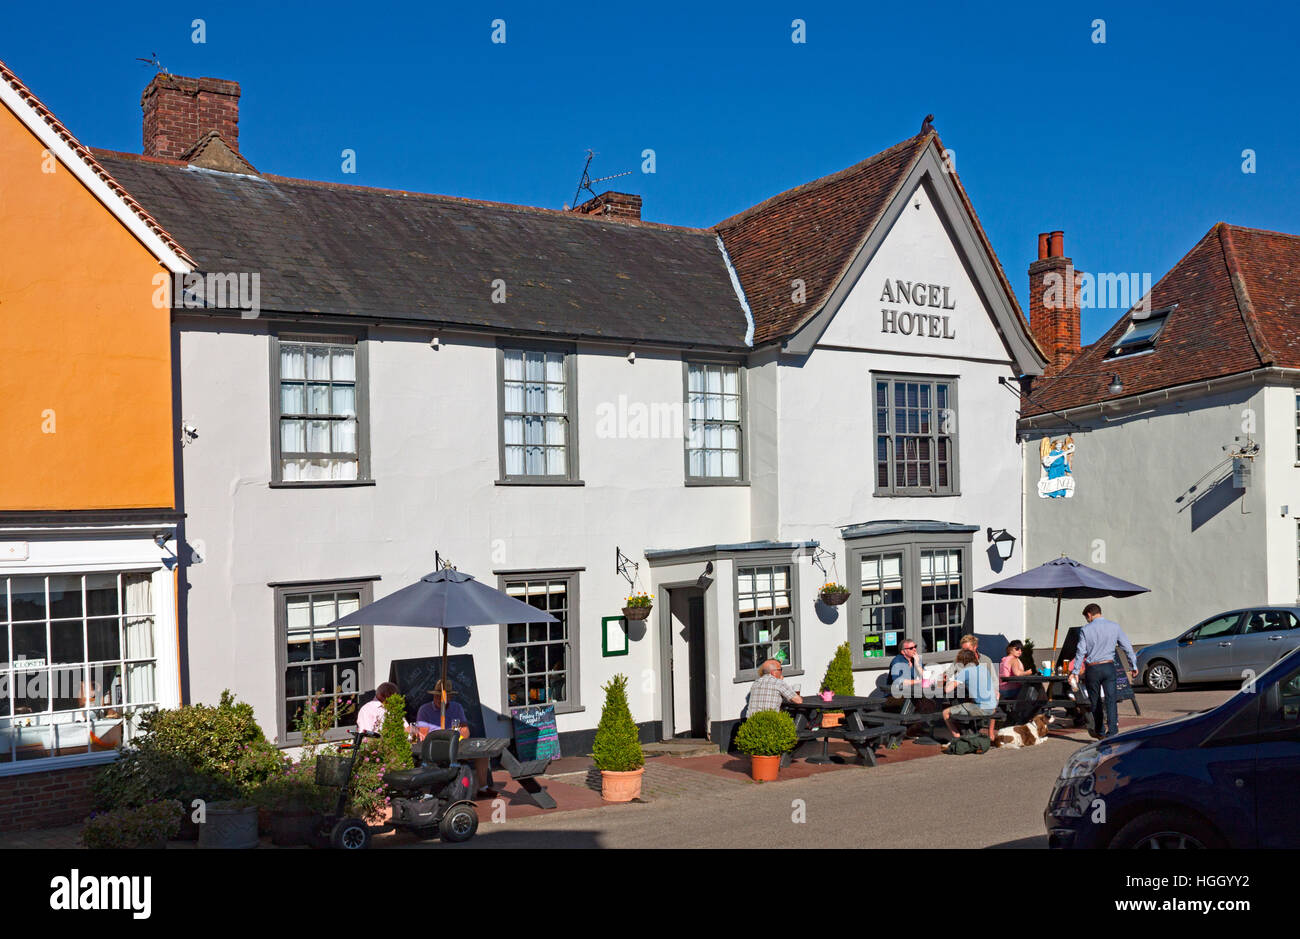 The Angel Hotel in the market square at Lavenham, Suffolk, England Stock Photo